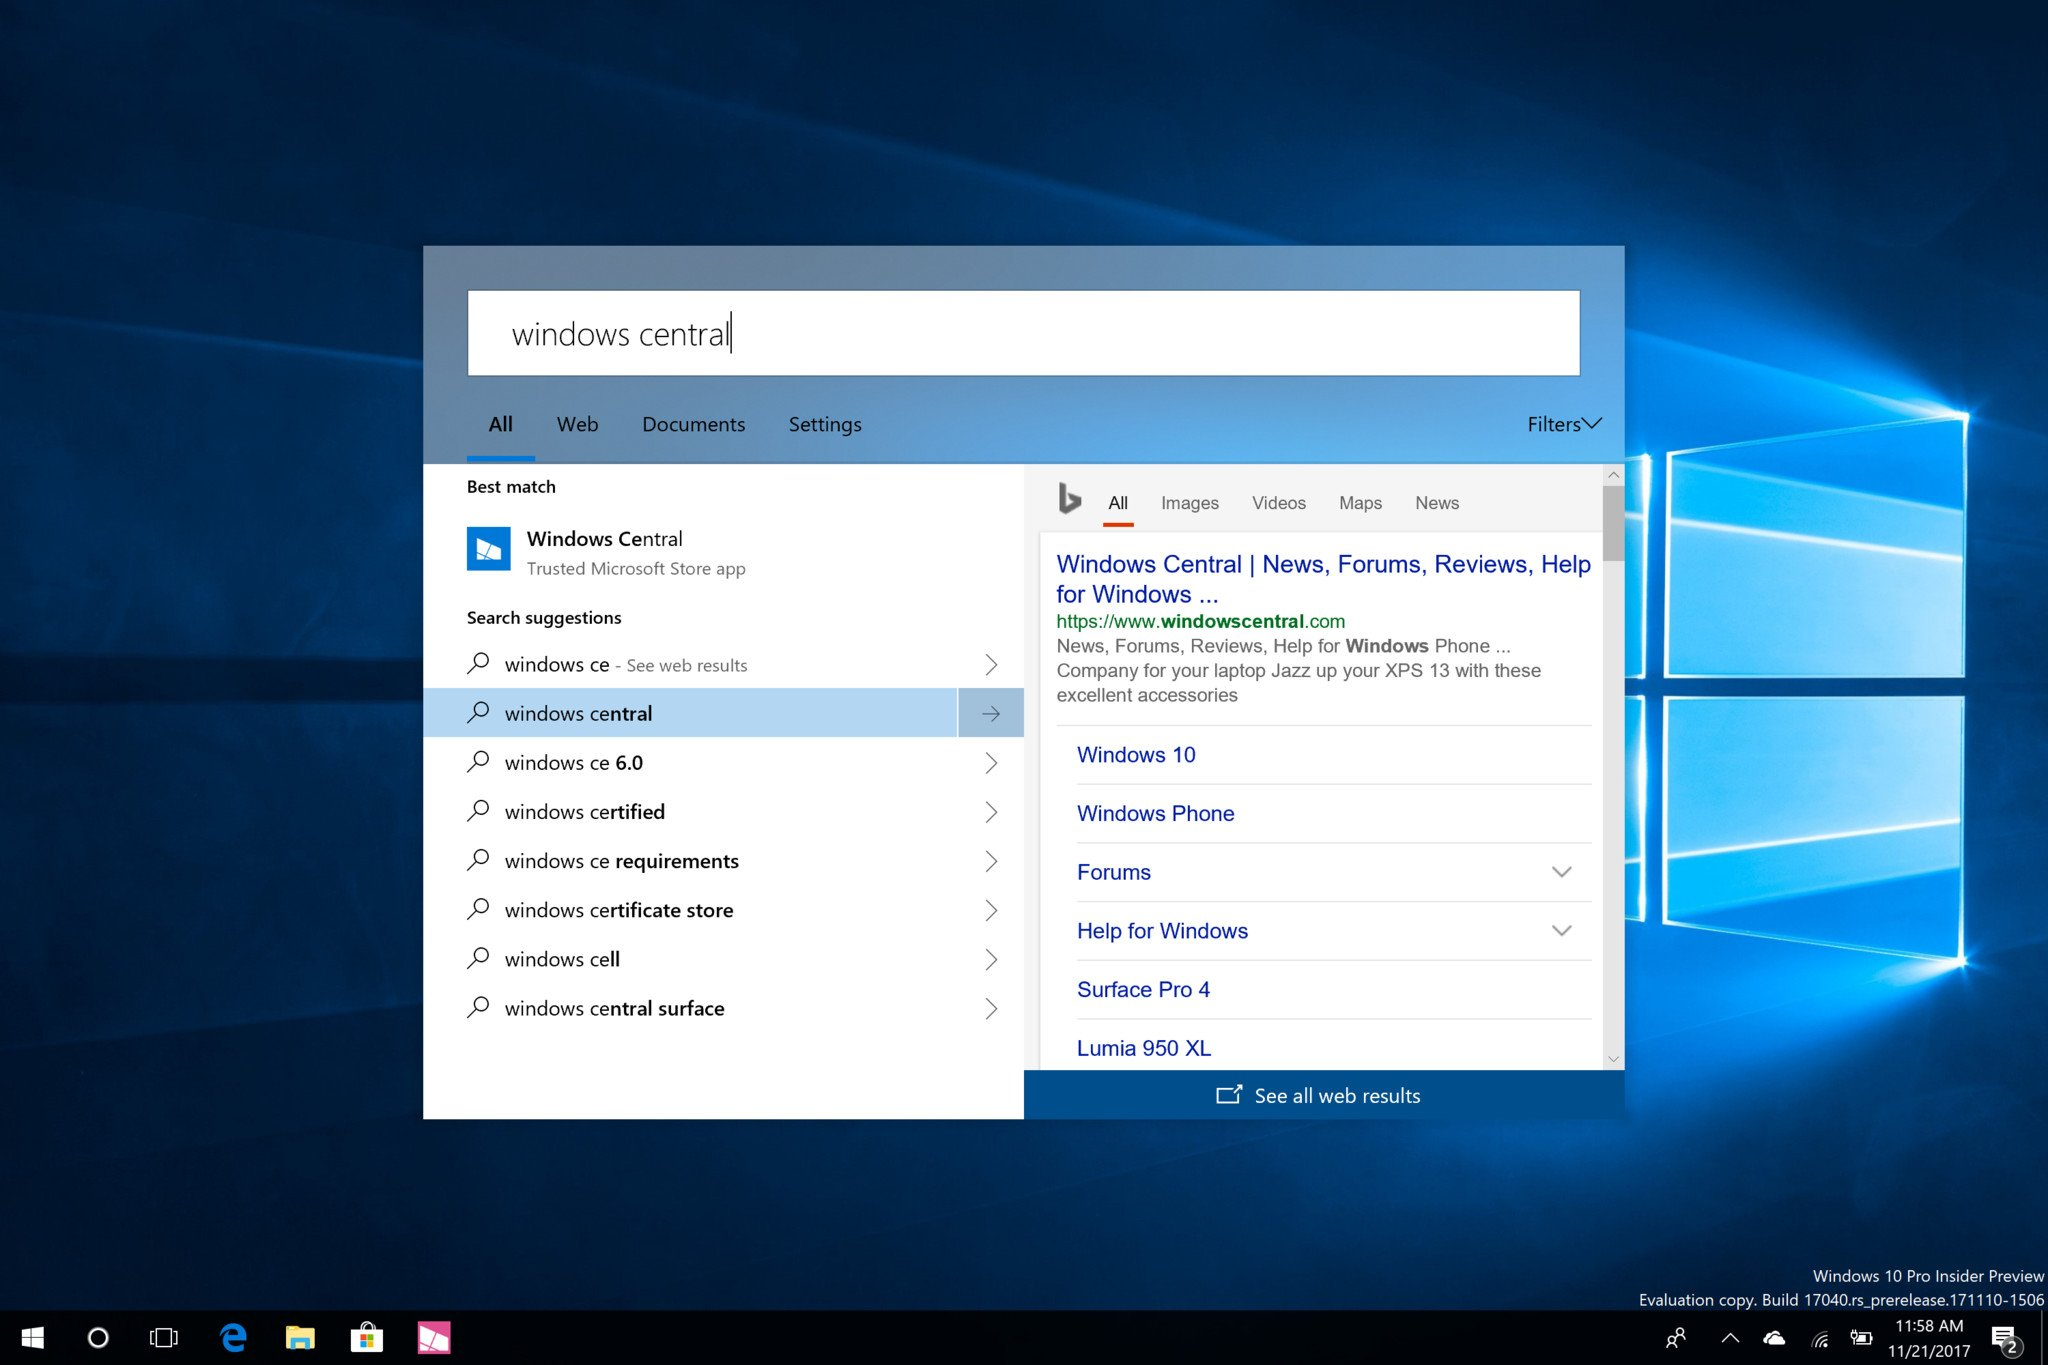 Microsoft Is Working On A New Search UI For Windows 10